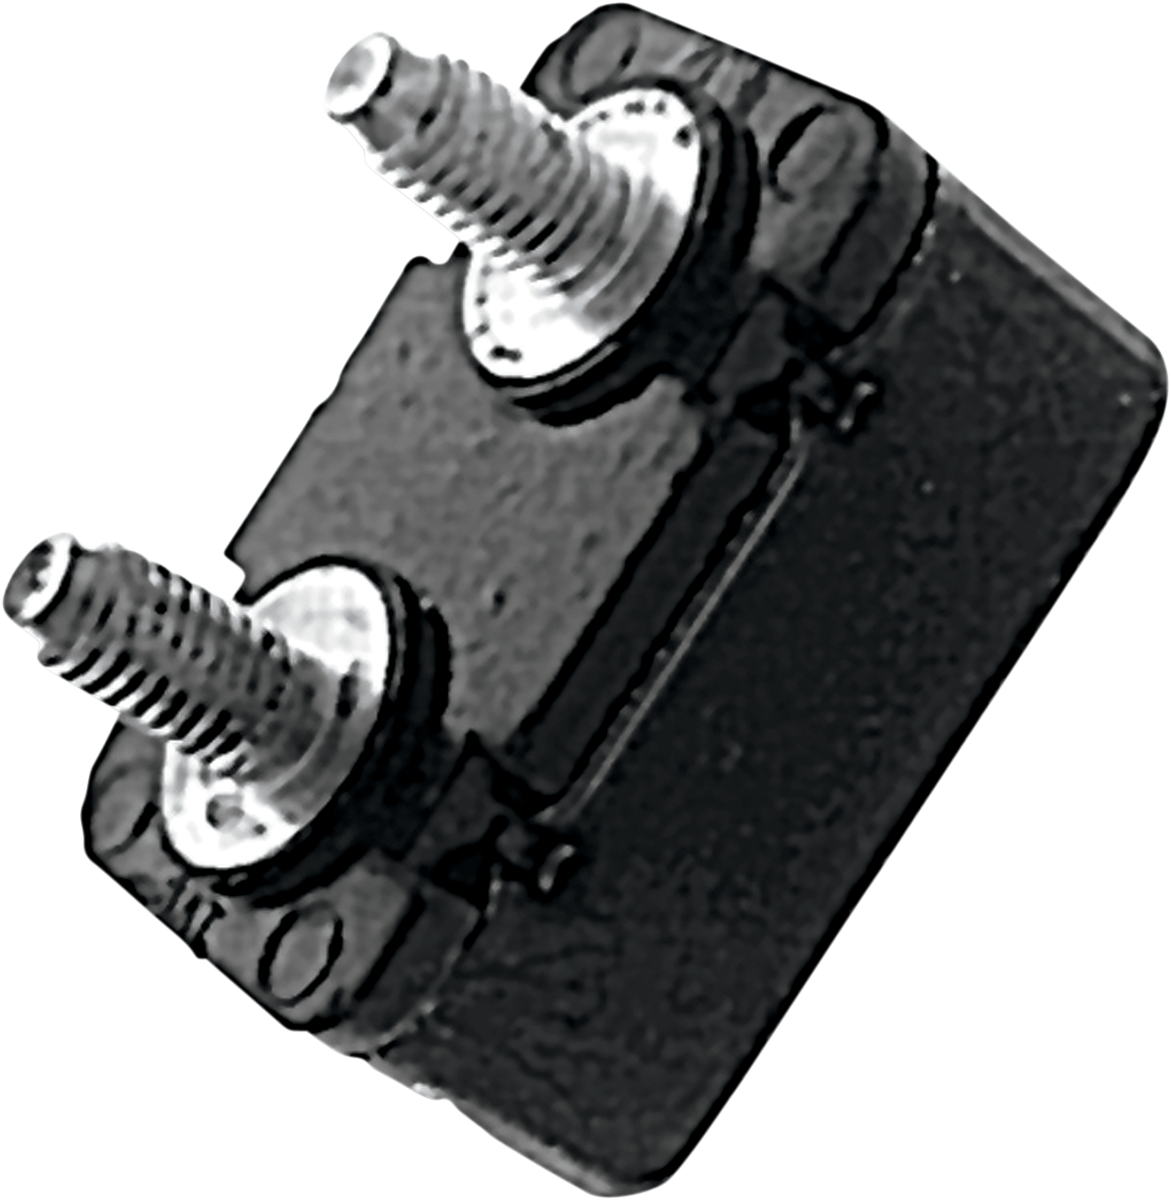 Standard Motor Products 50 Amp 2 Stud 12 Volt Circuit Breaker for Harley